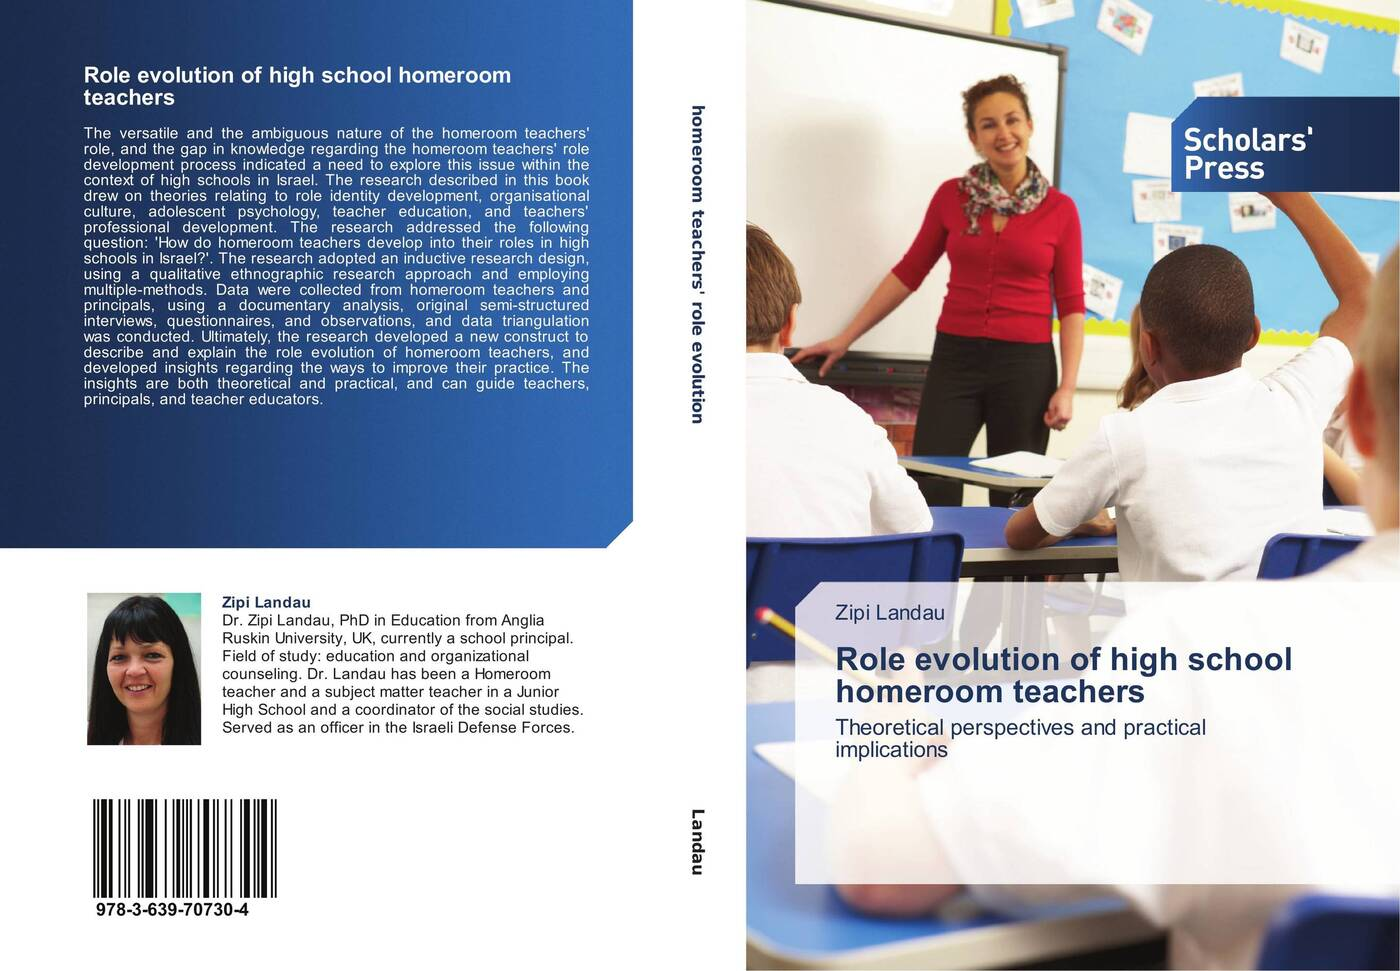 Zipi Landau Role evolution of high school homeroom teachers piya das and subhrabaran das competitiveness and role of research and development